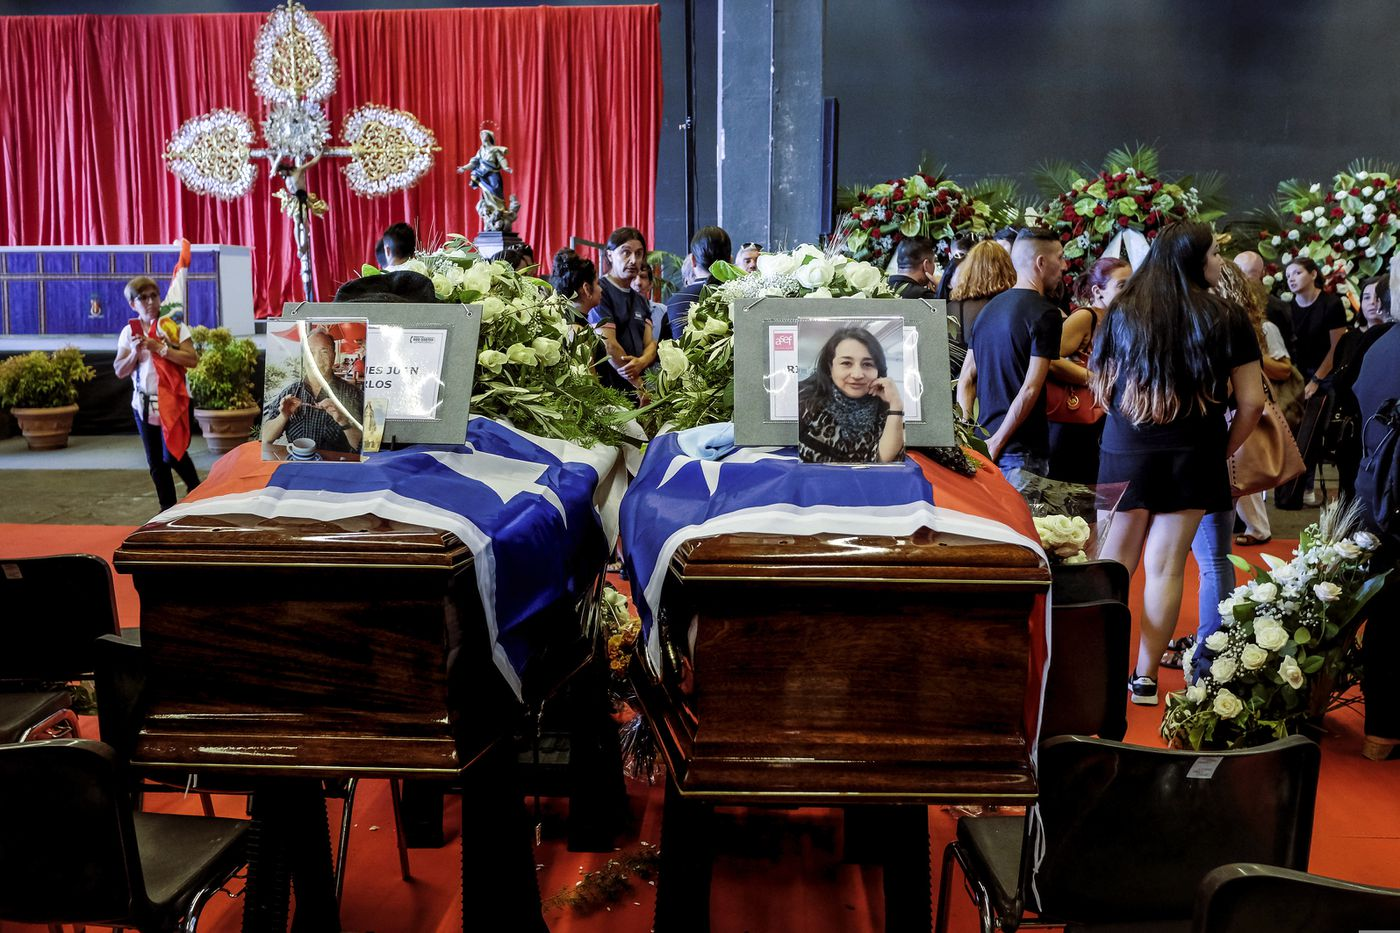 The latest romanian trucker is genoa bridges 43rd victim the coffins of juan carlos pastenes and his wife nora rivera from chile are izmirmasajfo